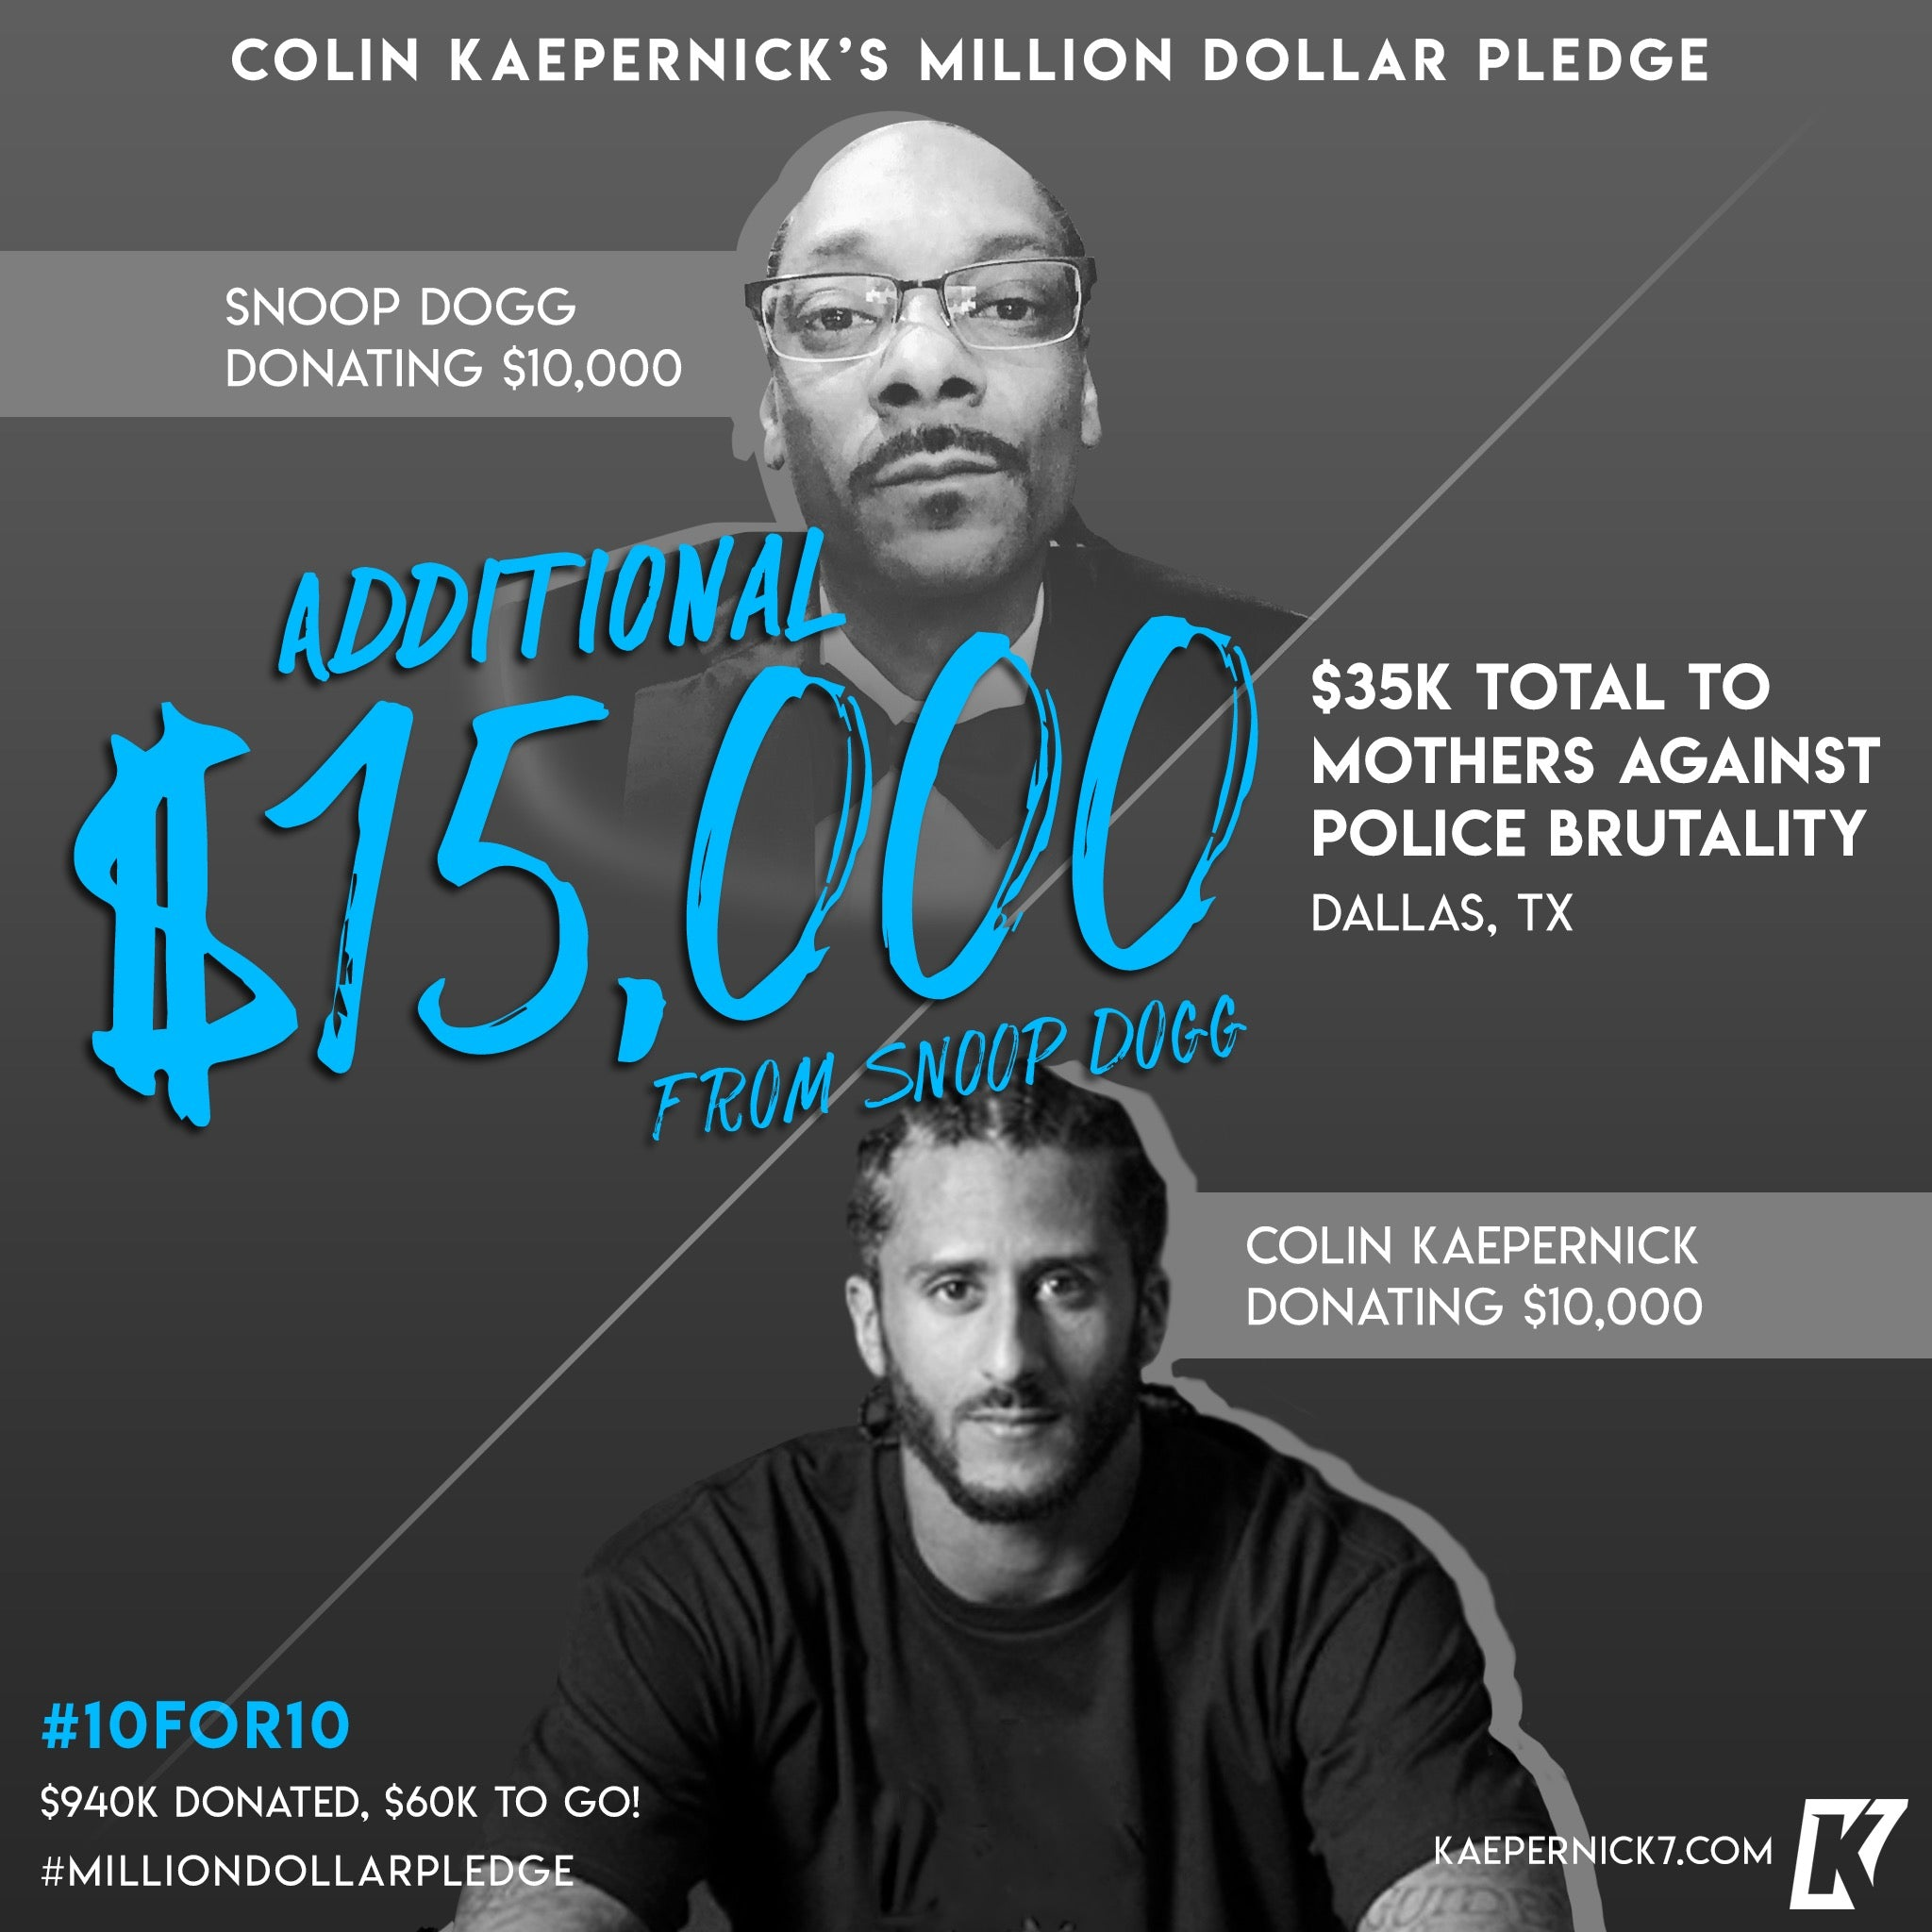 Colin Kaepernick x Snoop Dogg #10for10